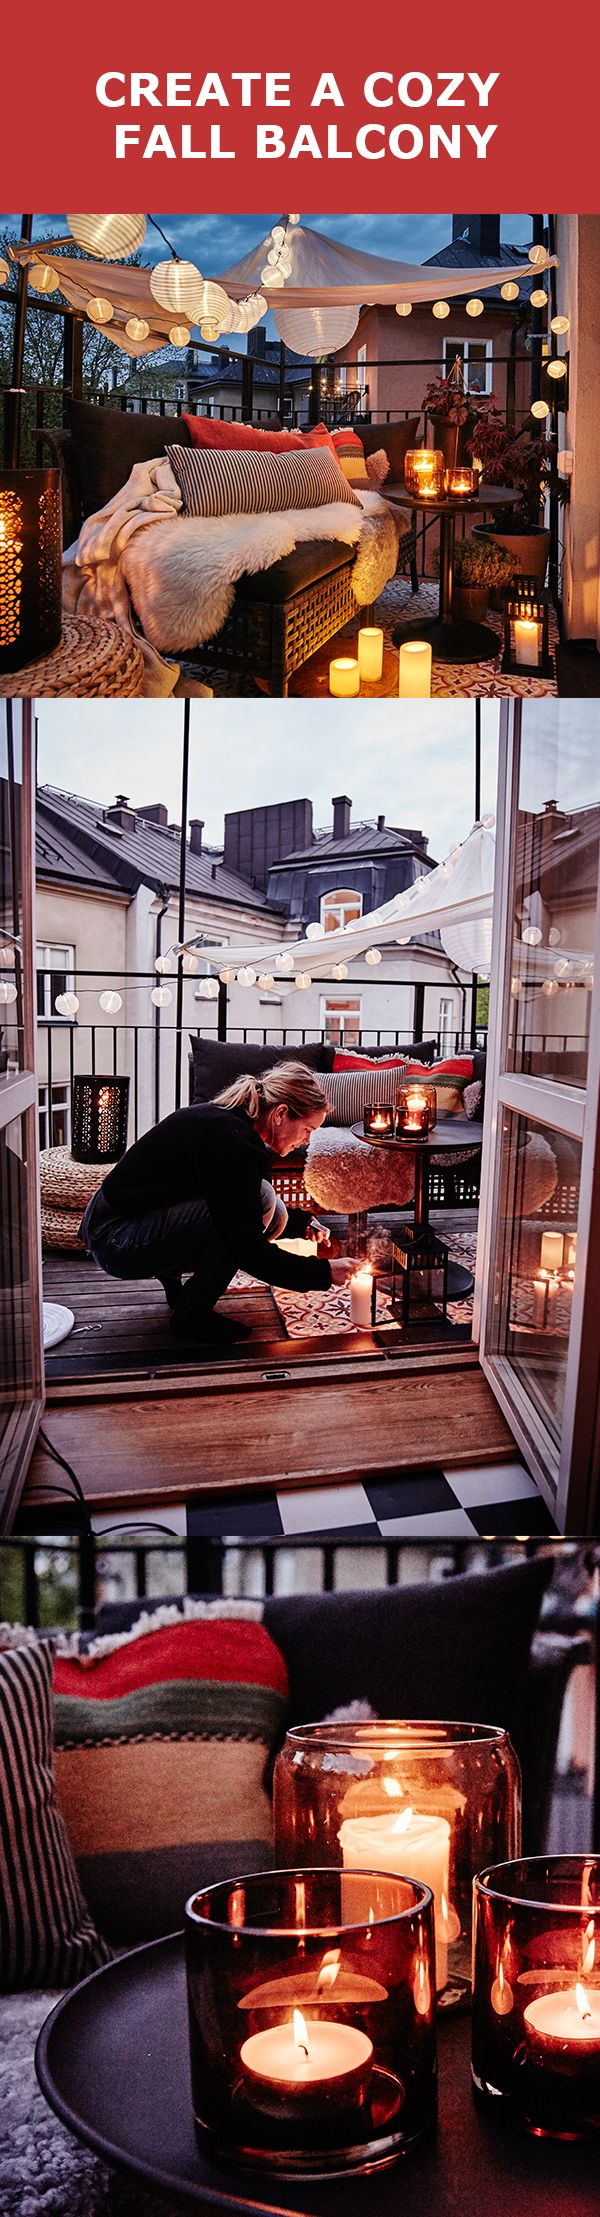 Turn your outdoor summer oasis into a cozy fall nook with just a few simple tweaks. Our GURLI throw is a great warm up, but here are a few other ways to fall-ify your balcony.